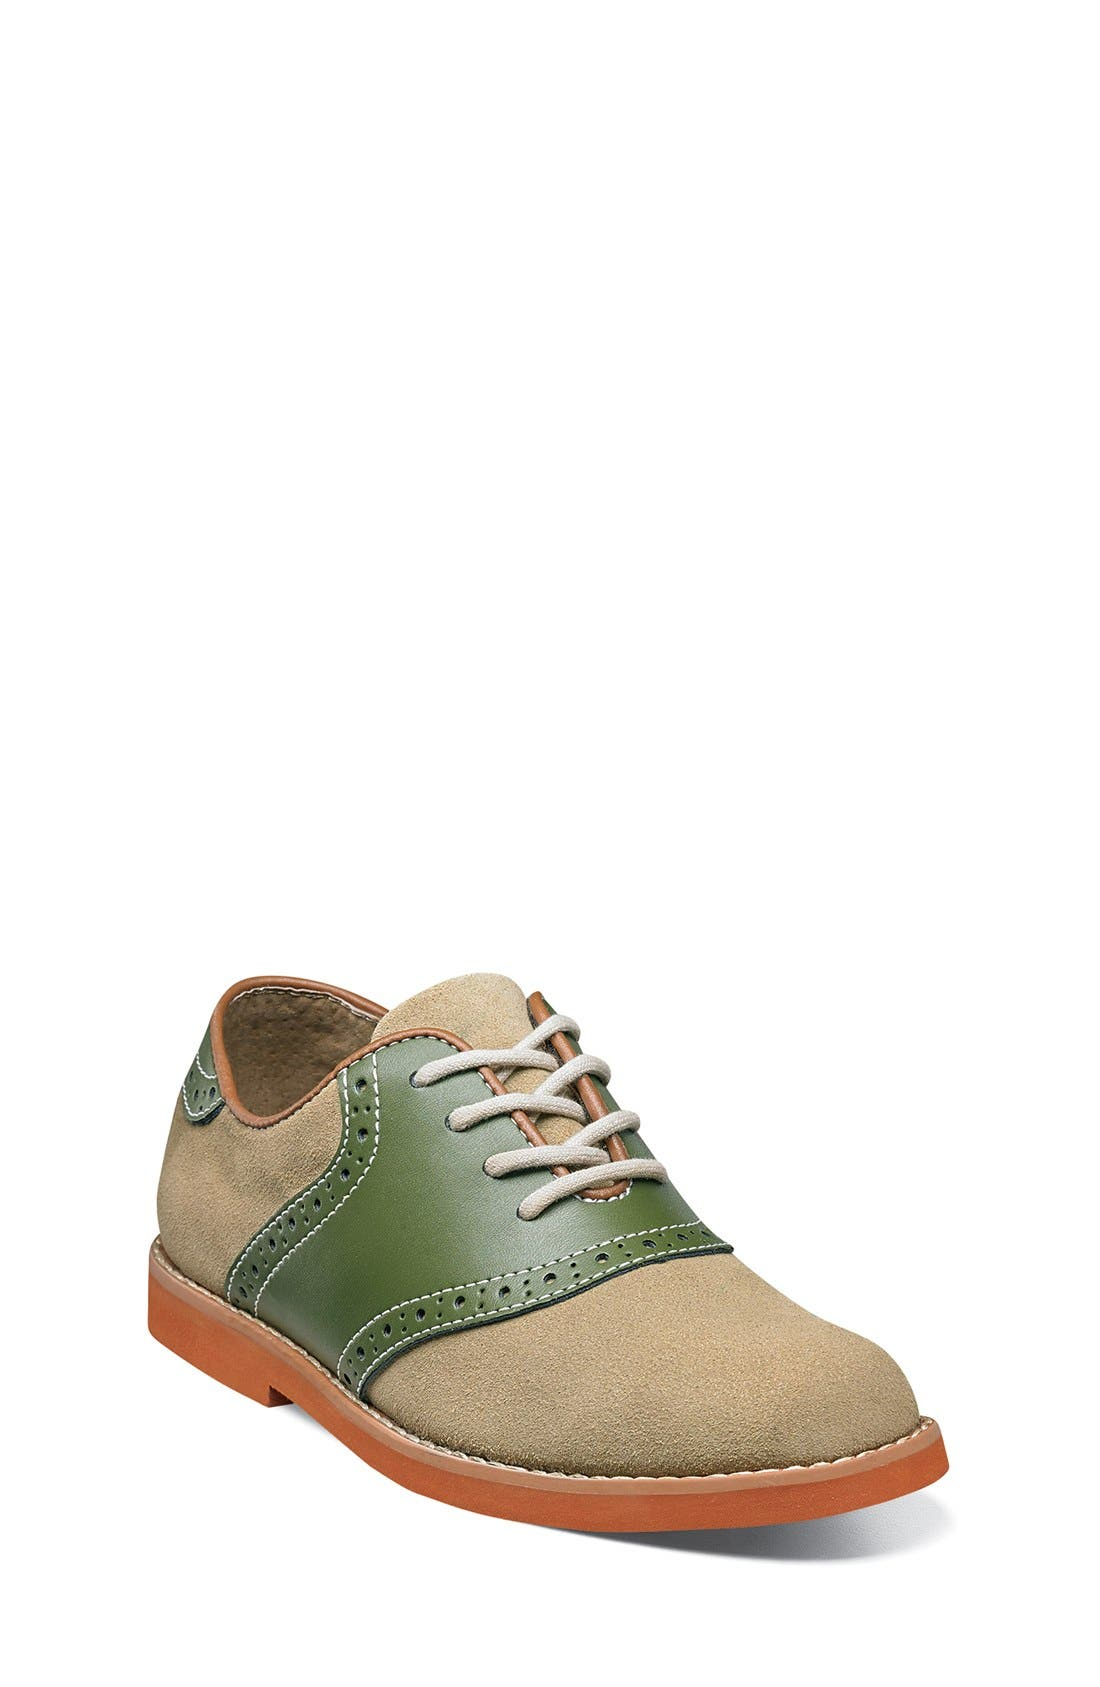 Main Image - Florsheim 'Kennett Jr.' Saddle Shoe (Toddler, Little Kid & Big Kid)